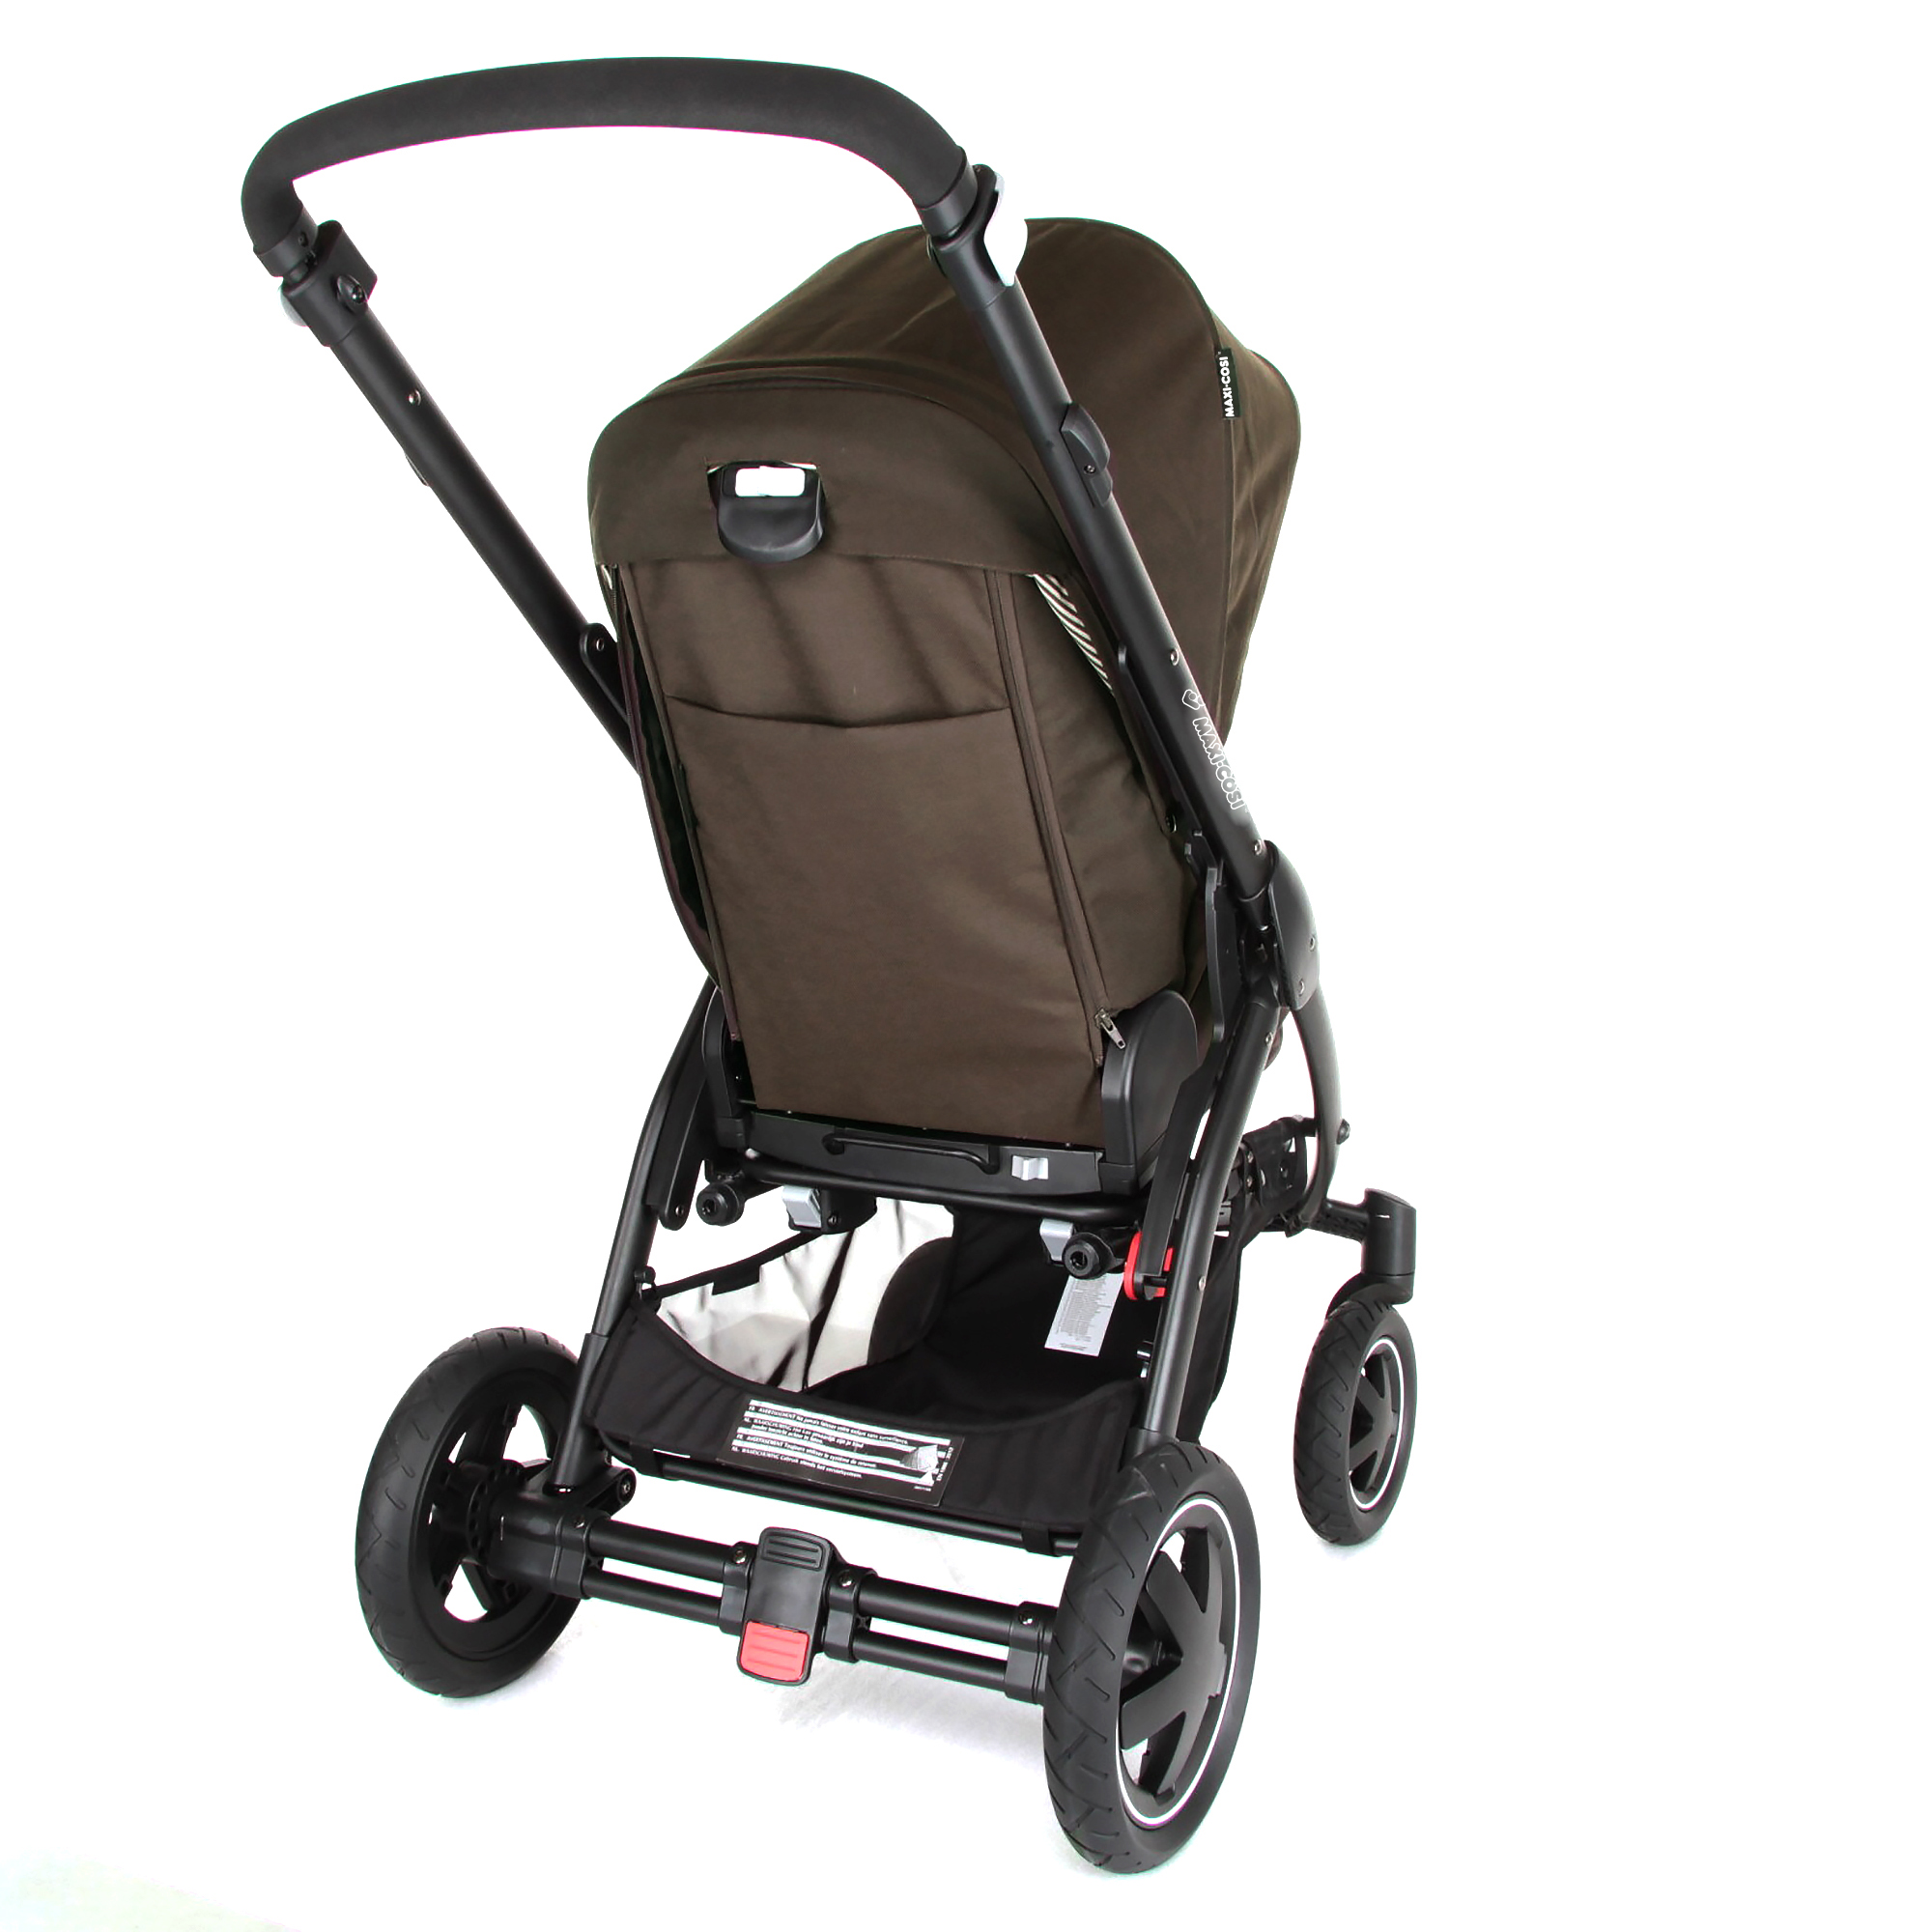 maxi cosi stroller stella 2017 earth brown buy at kidsroom strollers. Black Bedroom Furniture Sets. Home Design Ideas